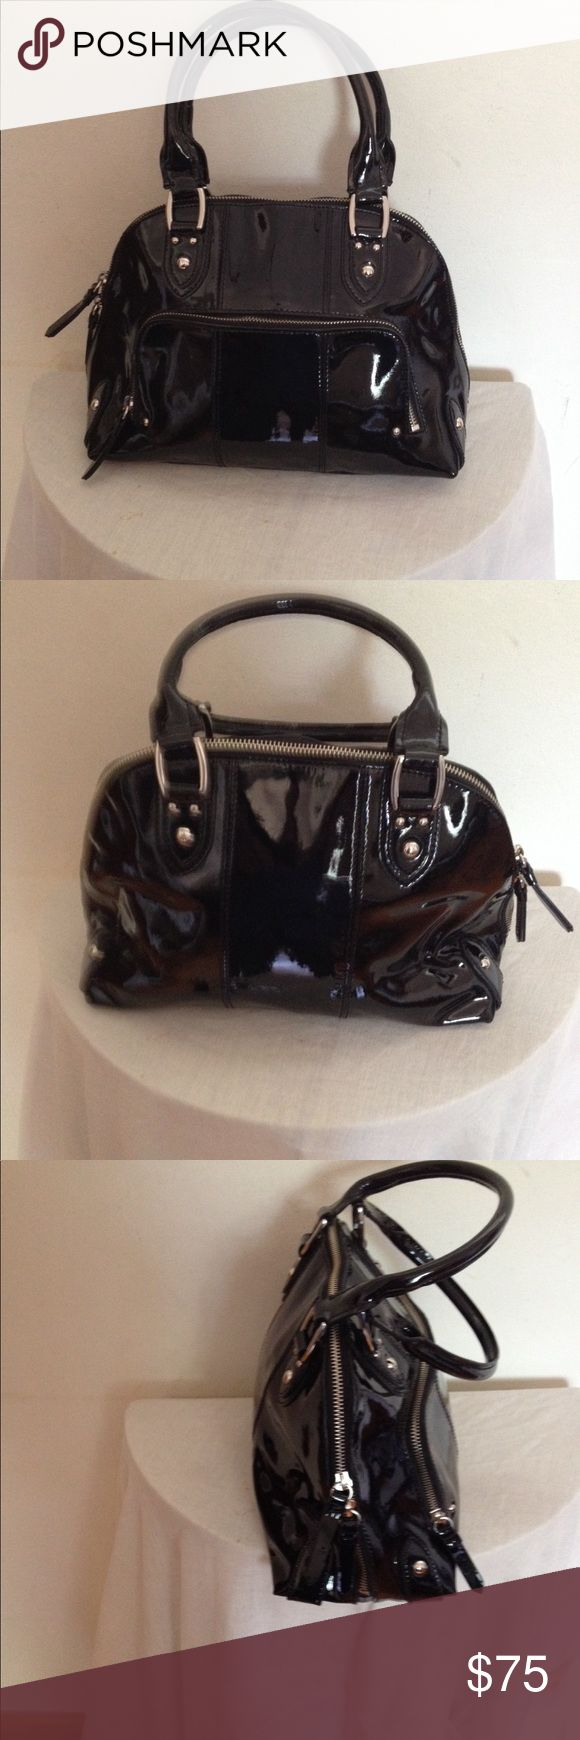 FORTH & TOWNE Black patent leather handbag This is a beautiful black patent leather bag with front zippered pocket cell phone pockets perfect for any occasion Bags Satchels